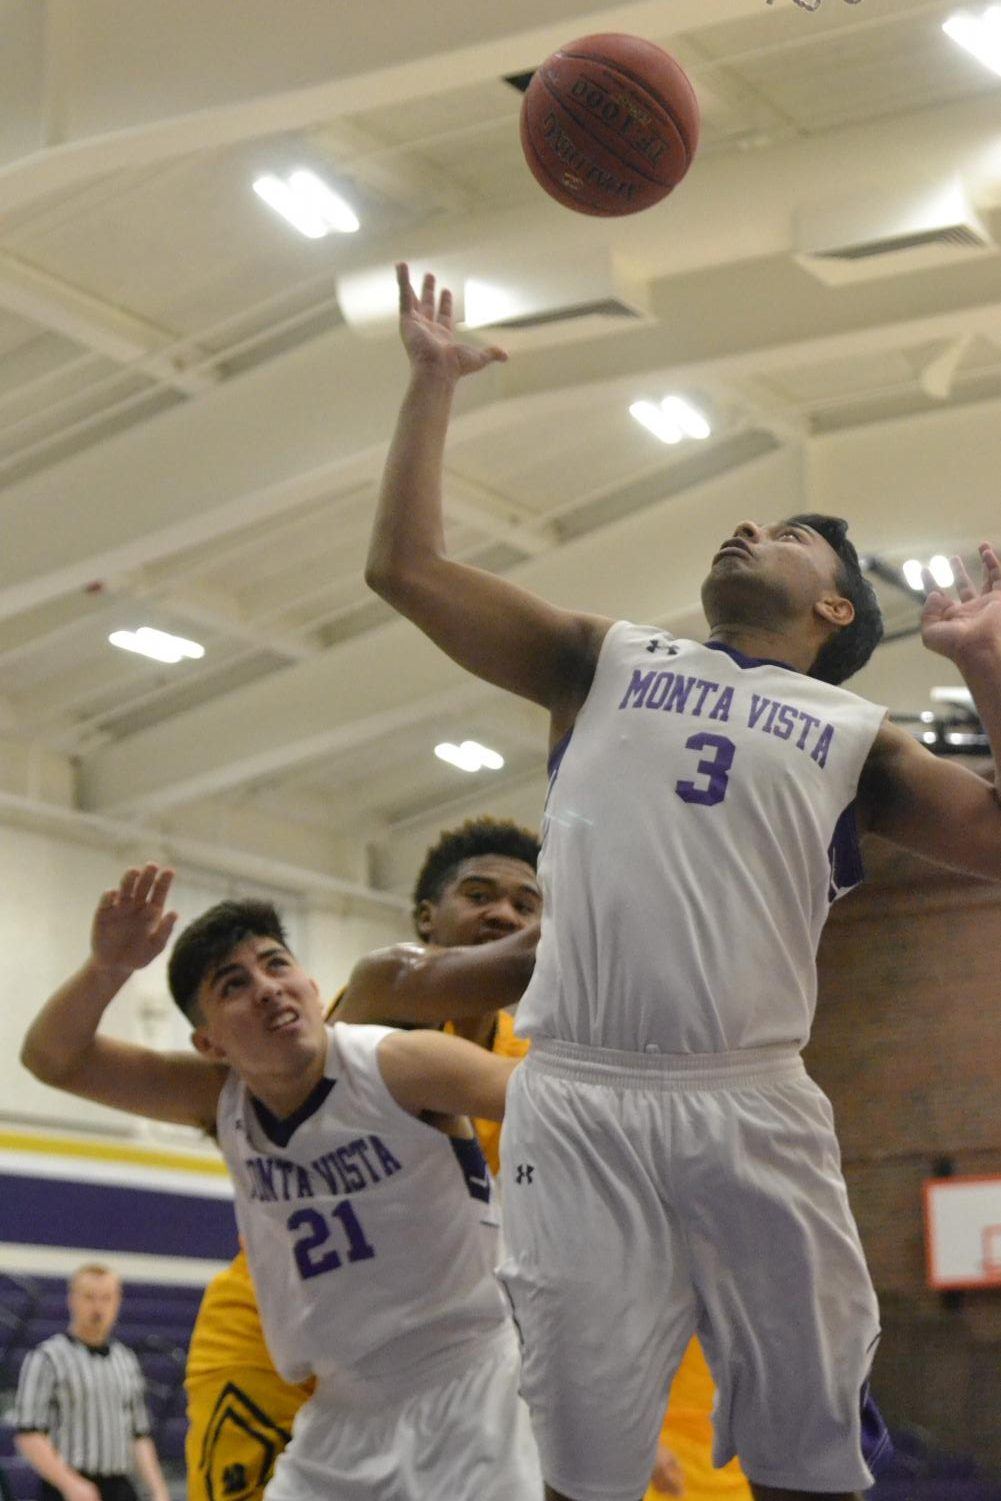 Junior Arvind Jagdish reaches up for a rebound as senior Josiah Figueroa covers him. Photo by Brandon Ng.